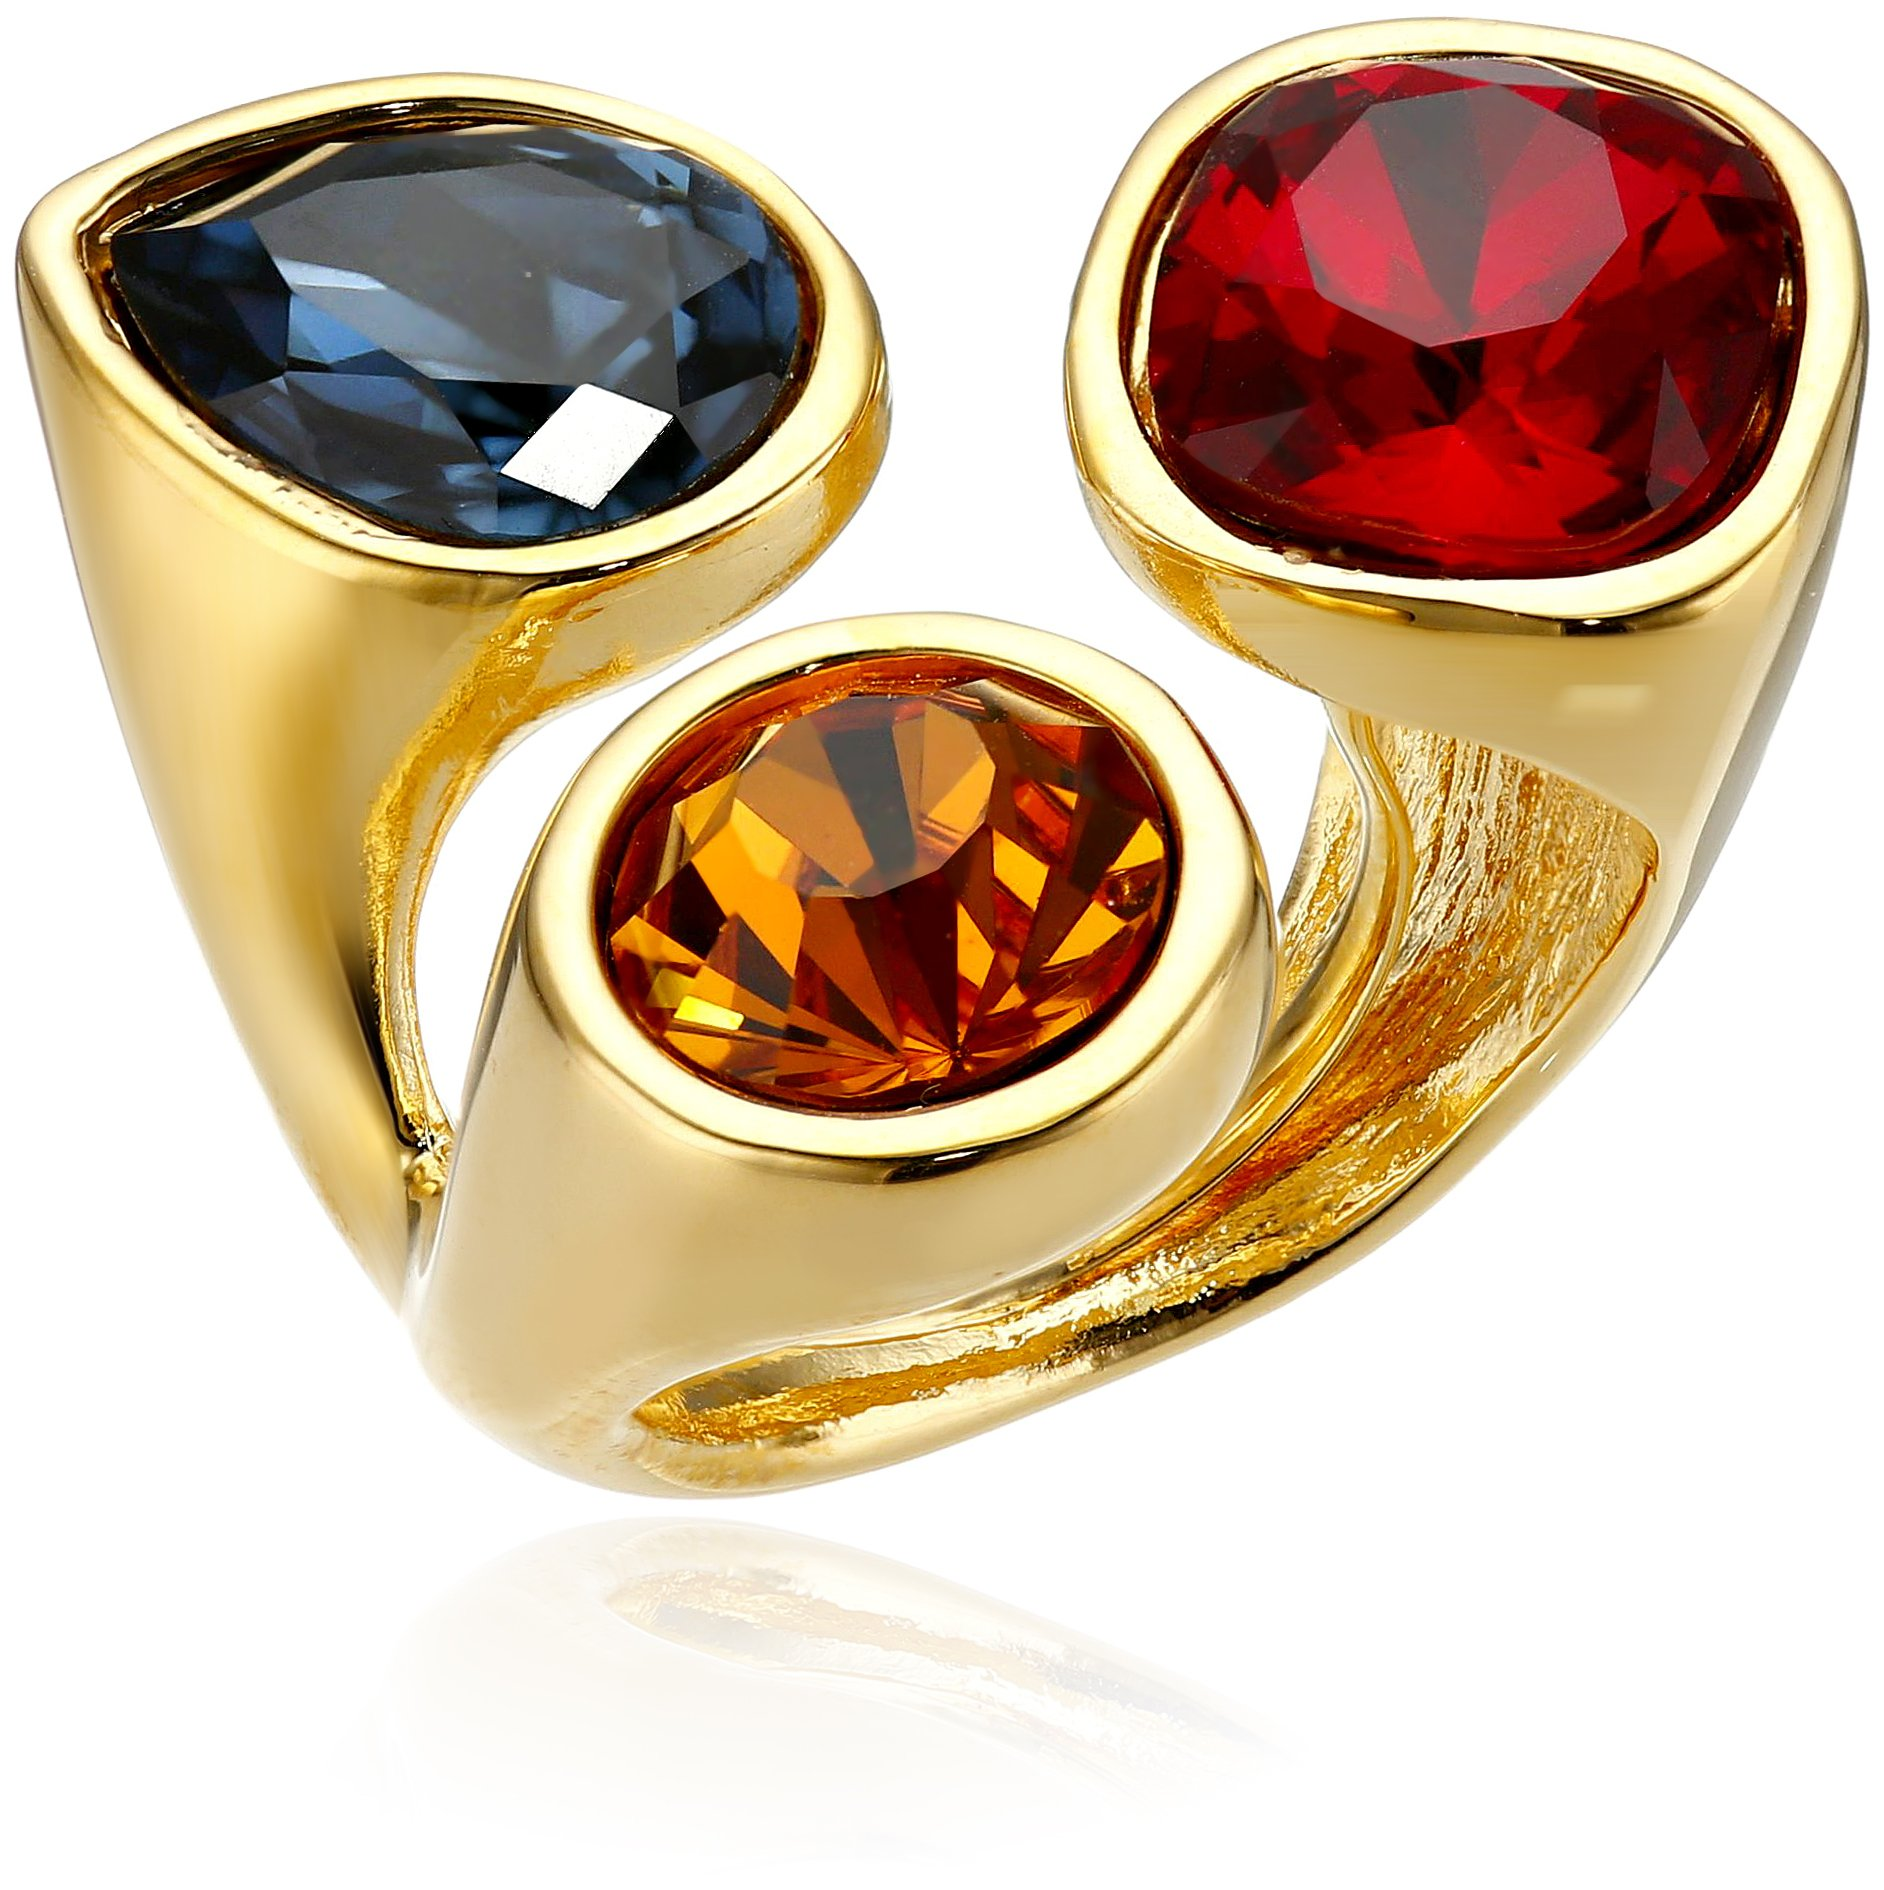 Kenneth Jay Lane Gold-Plated and Multi-Dark Gem Cluster Adjustable Ring, Size 5-7